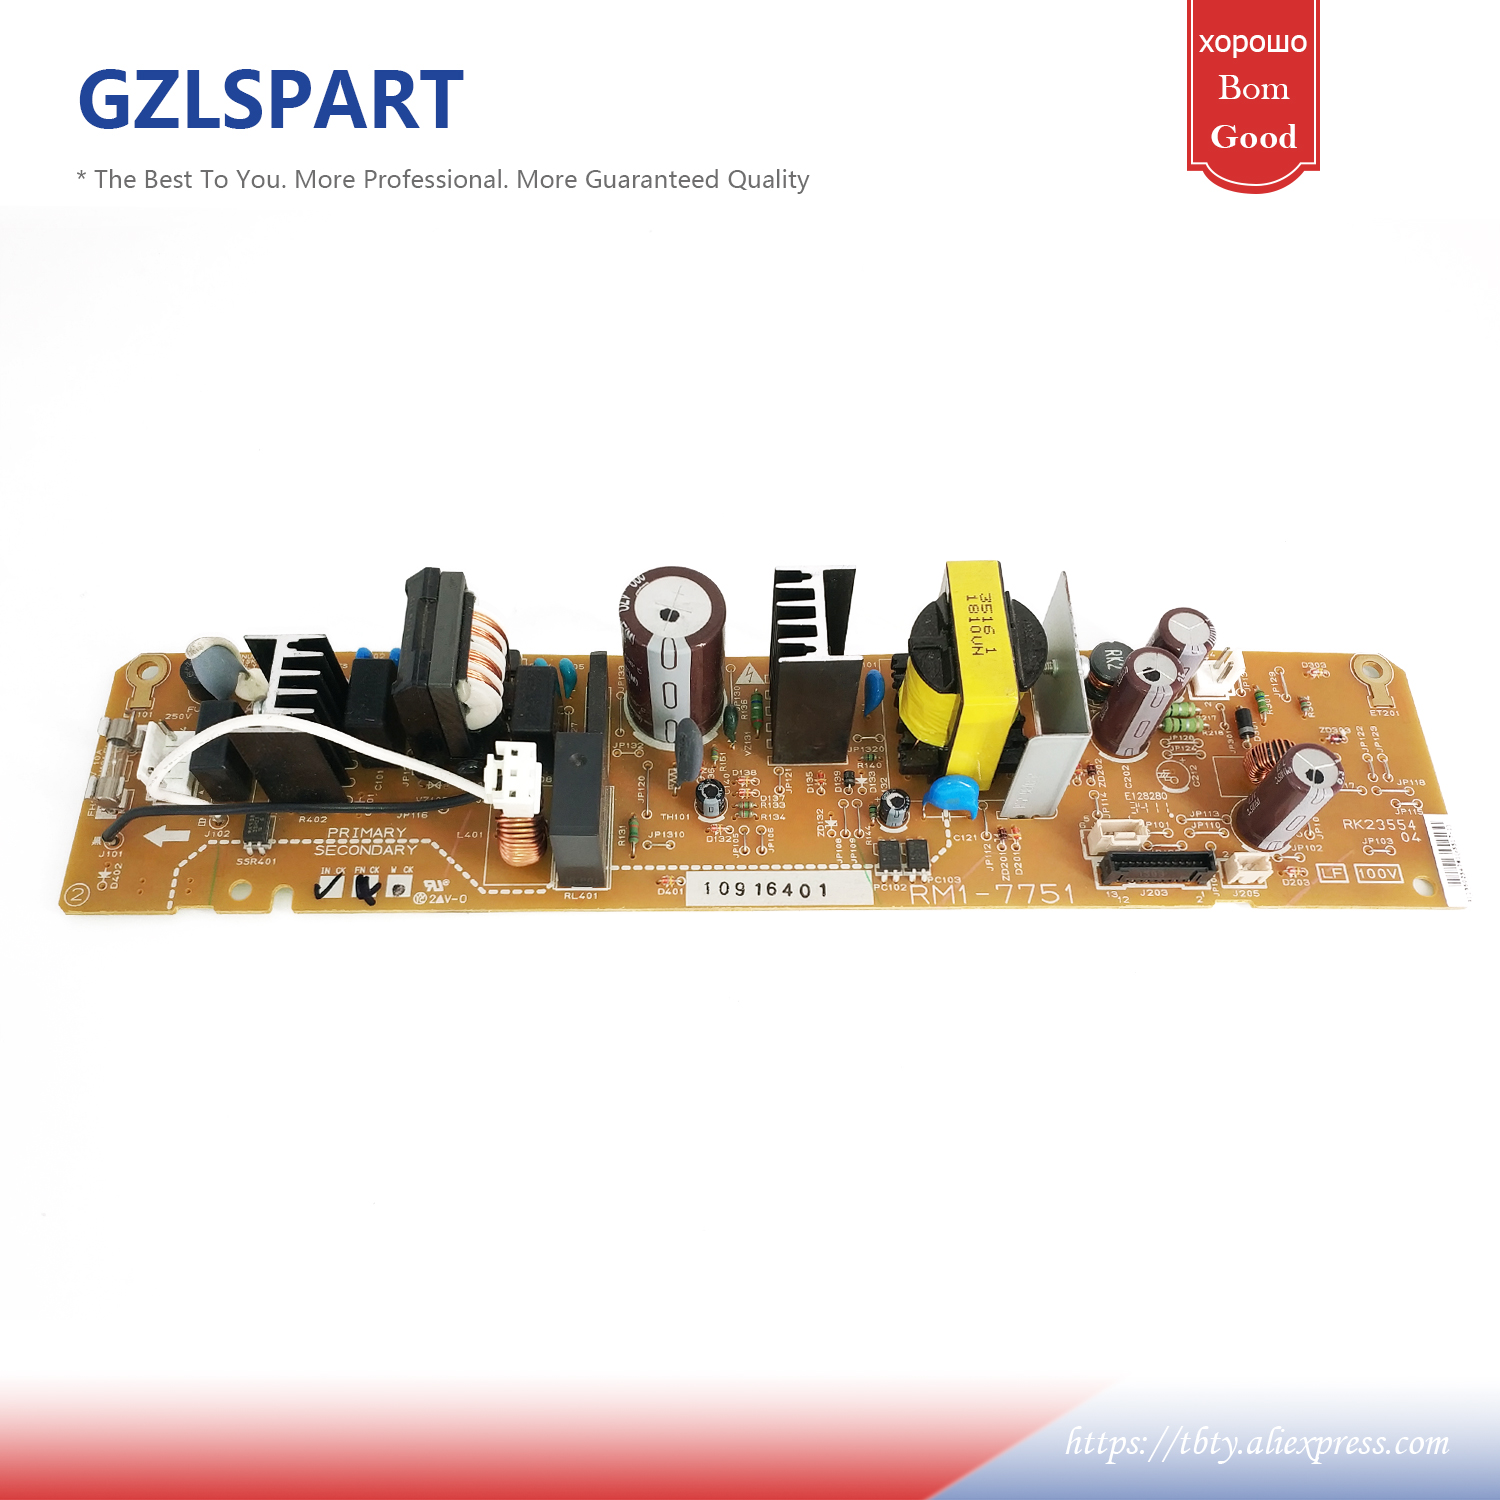 RM1-7751 RM1-7752 Engine Power Board For HP CP1025 CP1025nw 1025 1025nw Voltage Power Supply Board